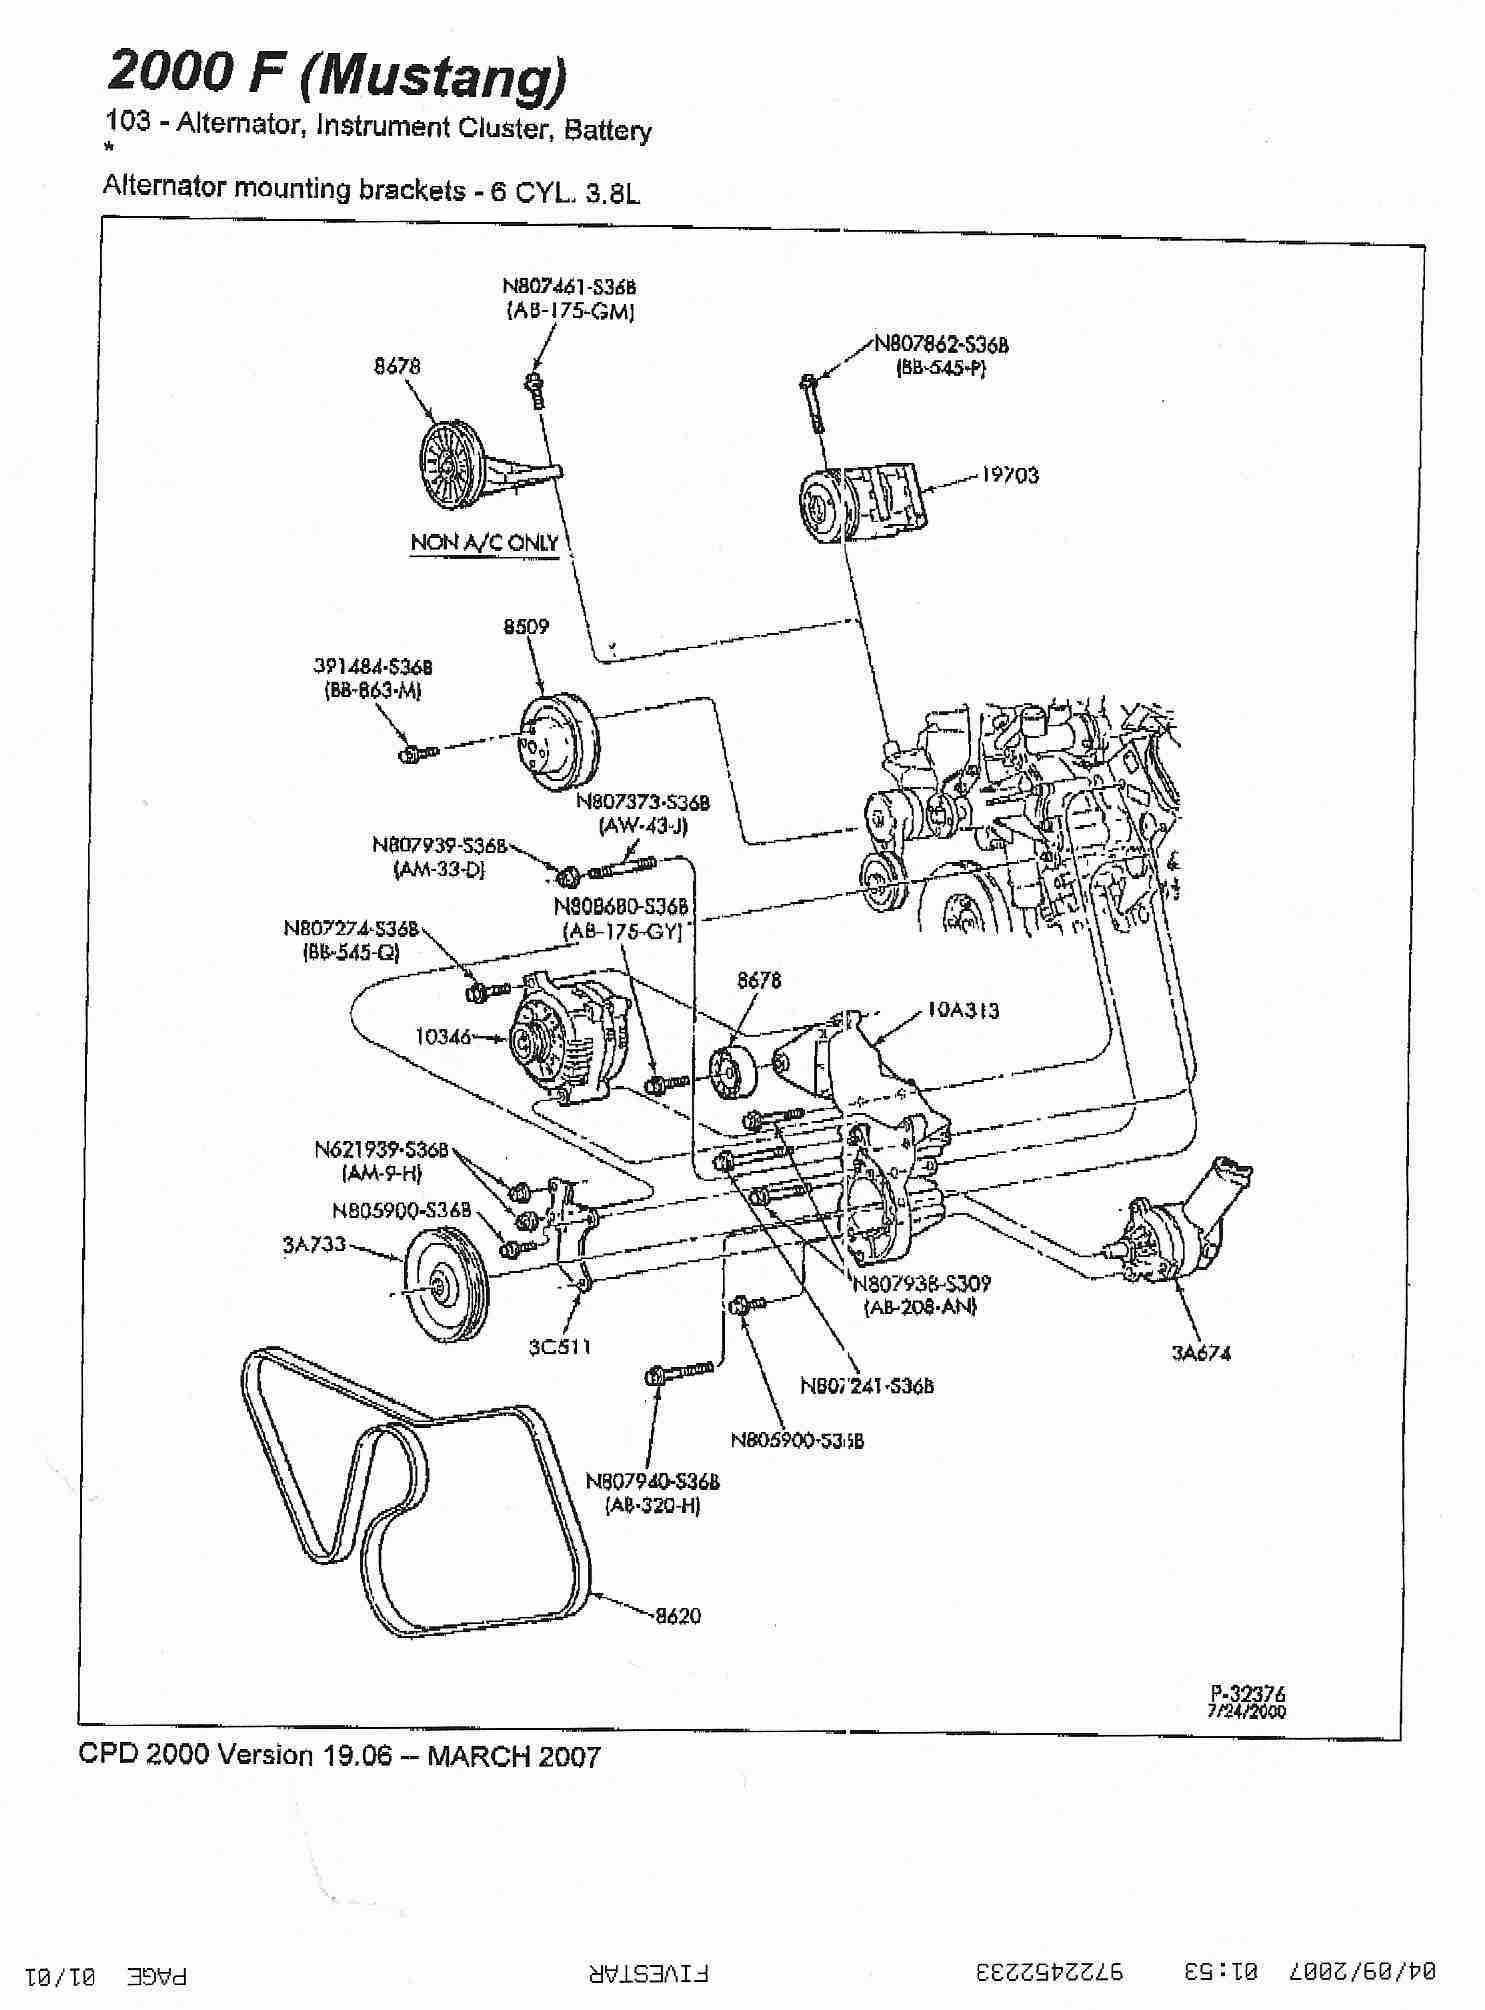 ford 3 8 engine diagram - understanding automotive wiring diagrams for  wiring diagram schematics  wiring diagram schematics